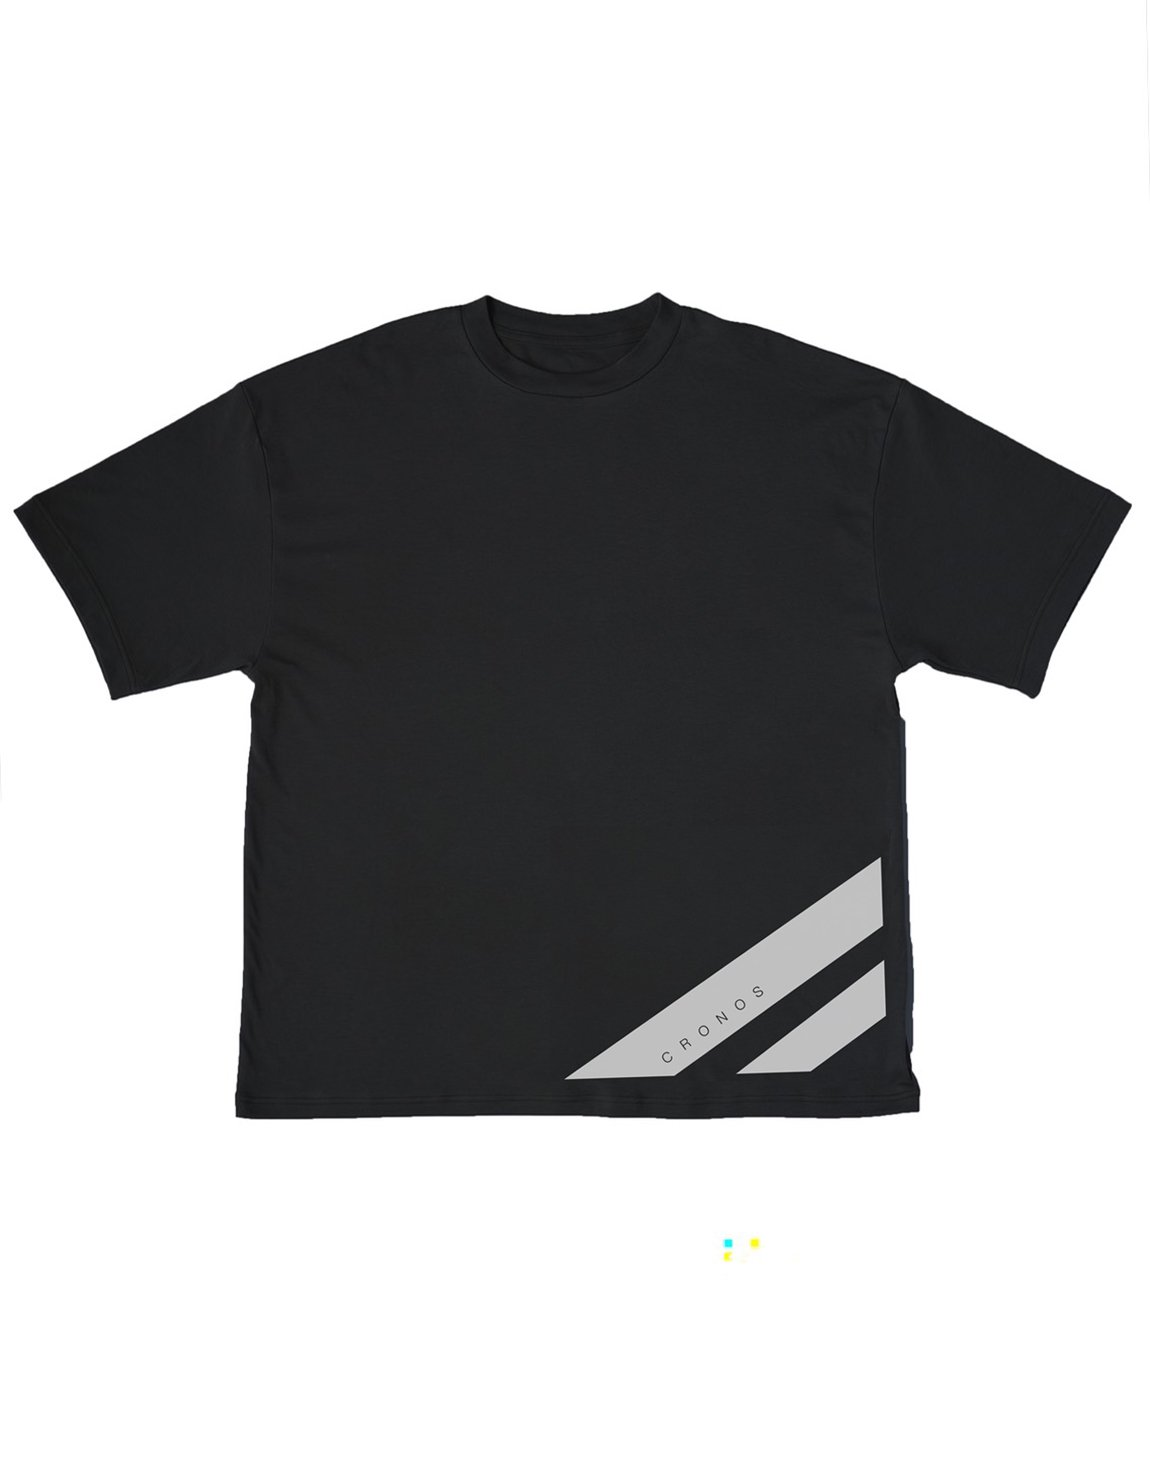 <img class='new_mark_img1' src='https://img.shop-pro.jp/img/new/icons55.gif' style='border:none;display:inline;margin:0px;padding:0px;width:auto;' />CRONOS STRIPE LOGO NEW OVER SIZE T-SHIRTS【BLACK】